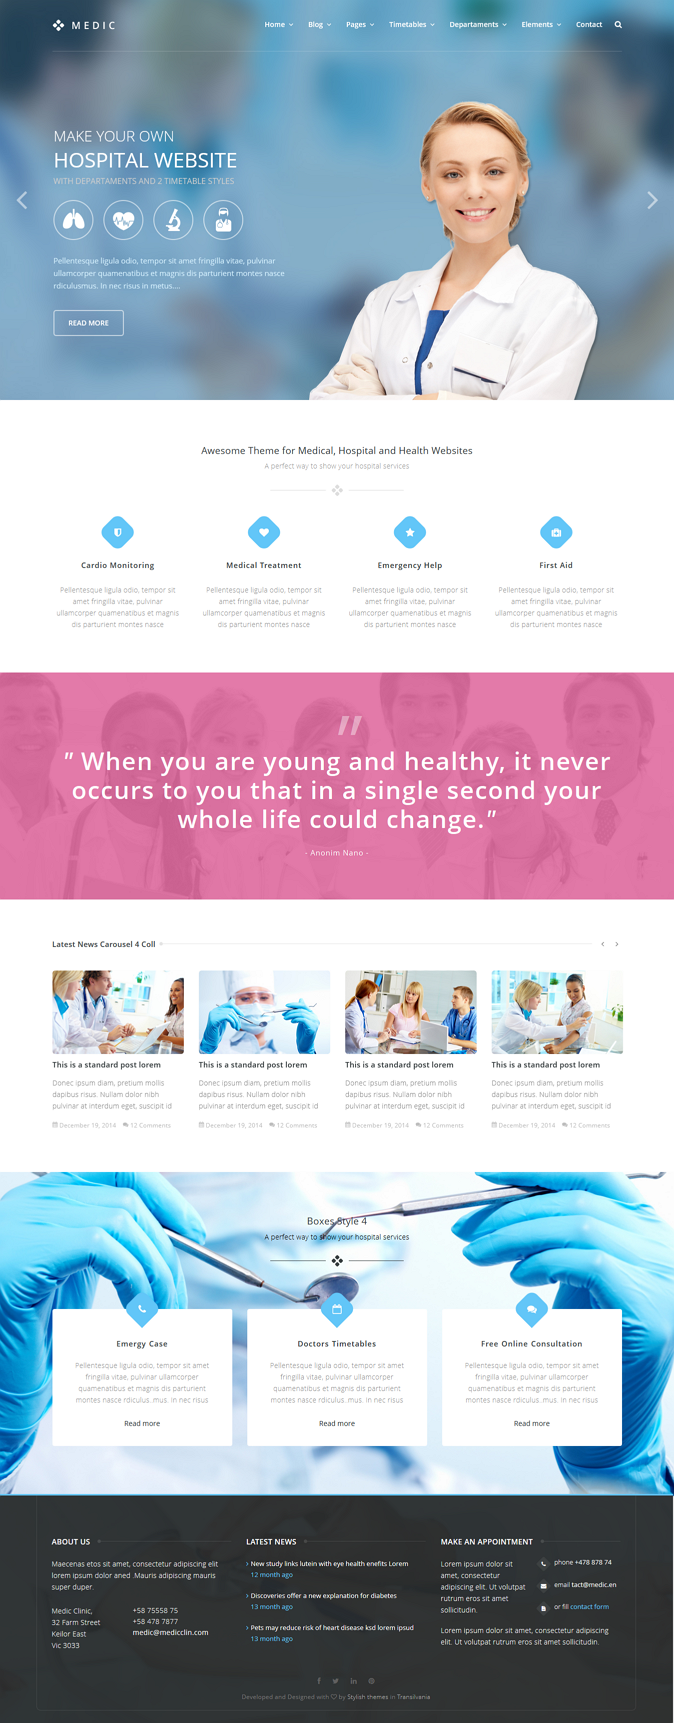 Medic is an html template that will help you to make a medical health or hospital website in this pack of 57 html you will find 2 styles of timetables